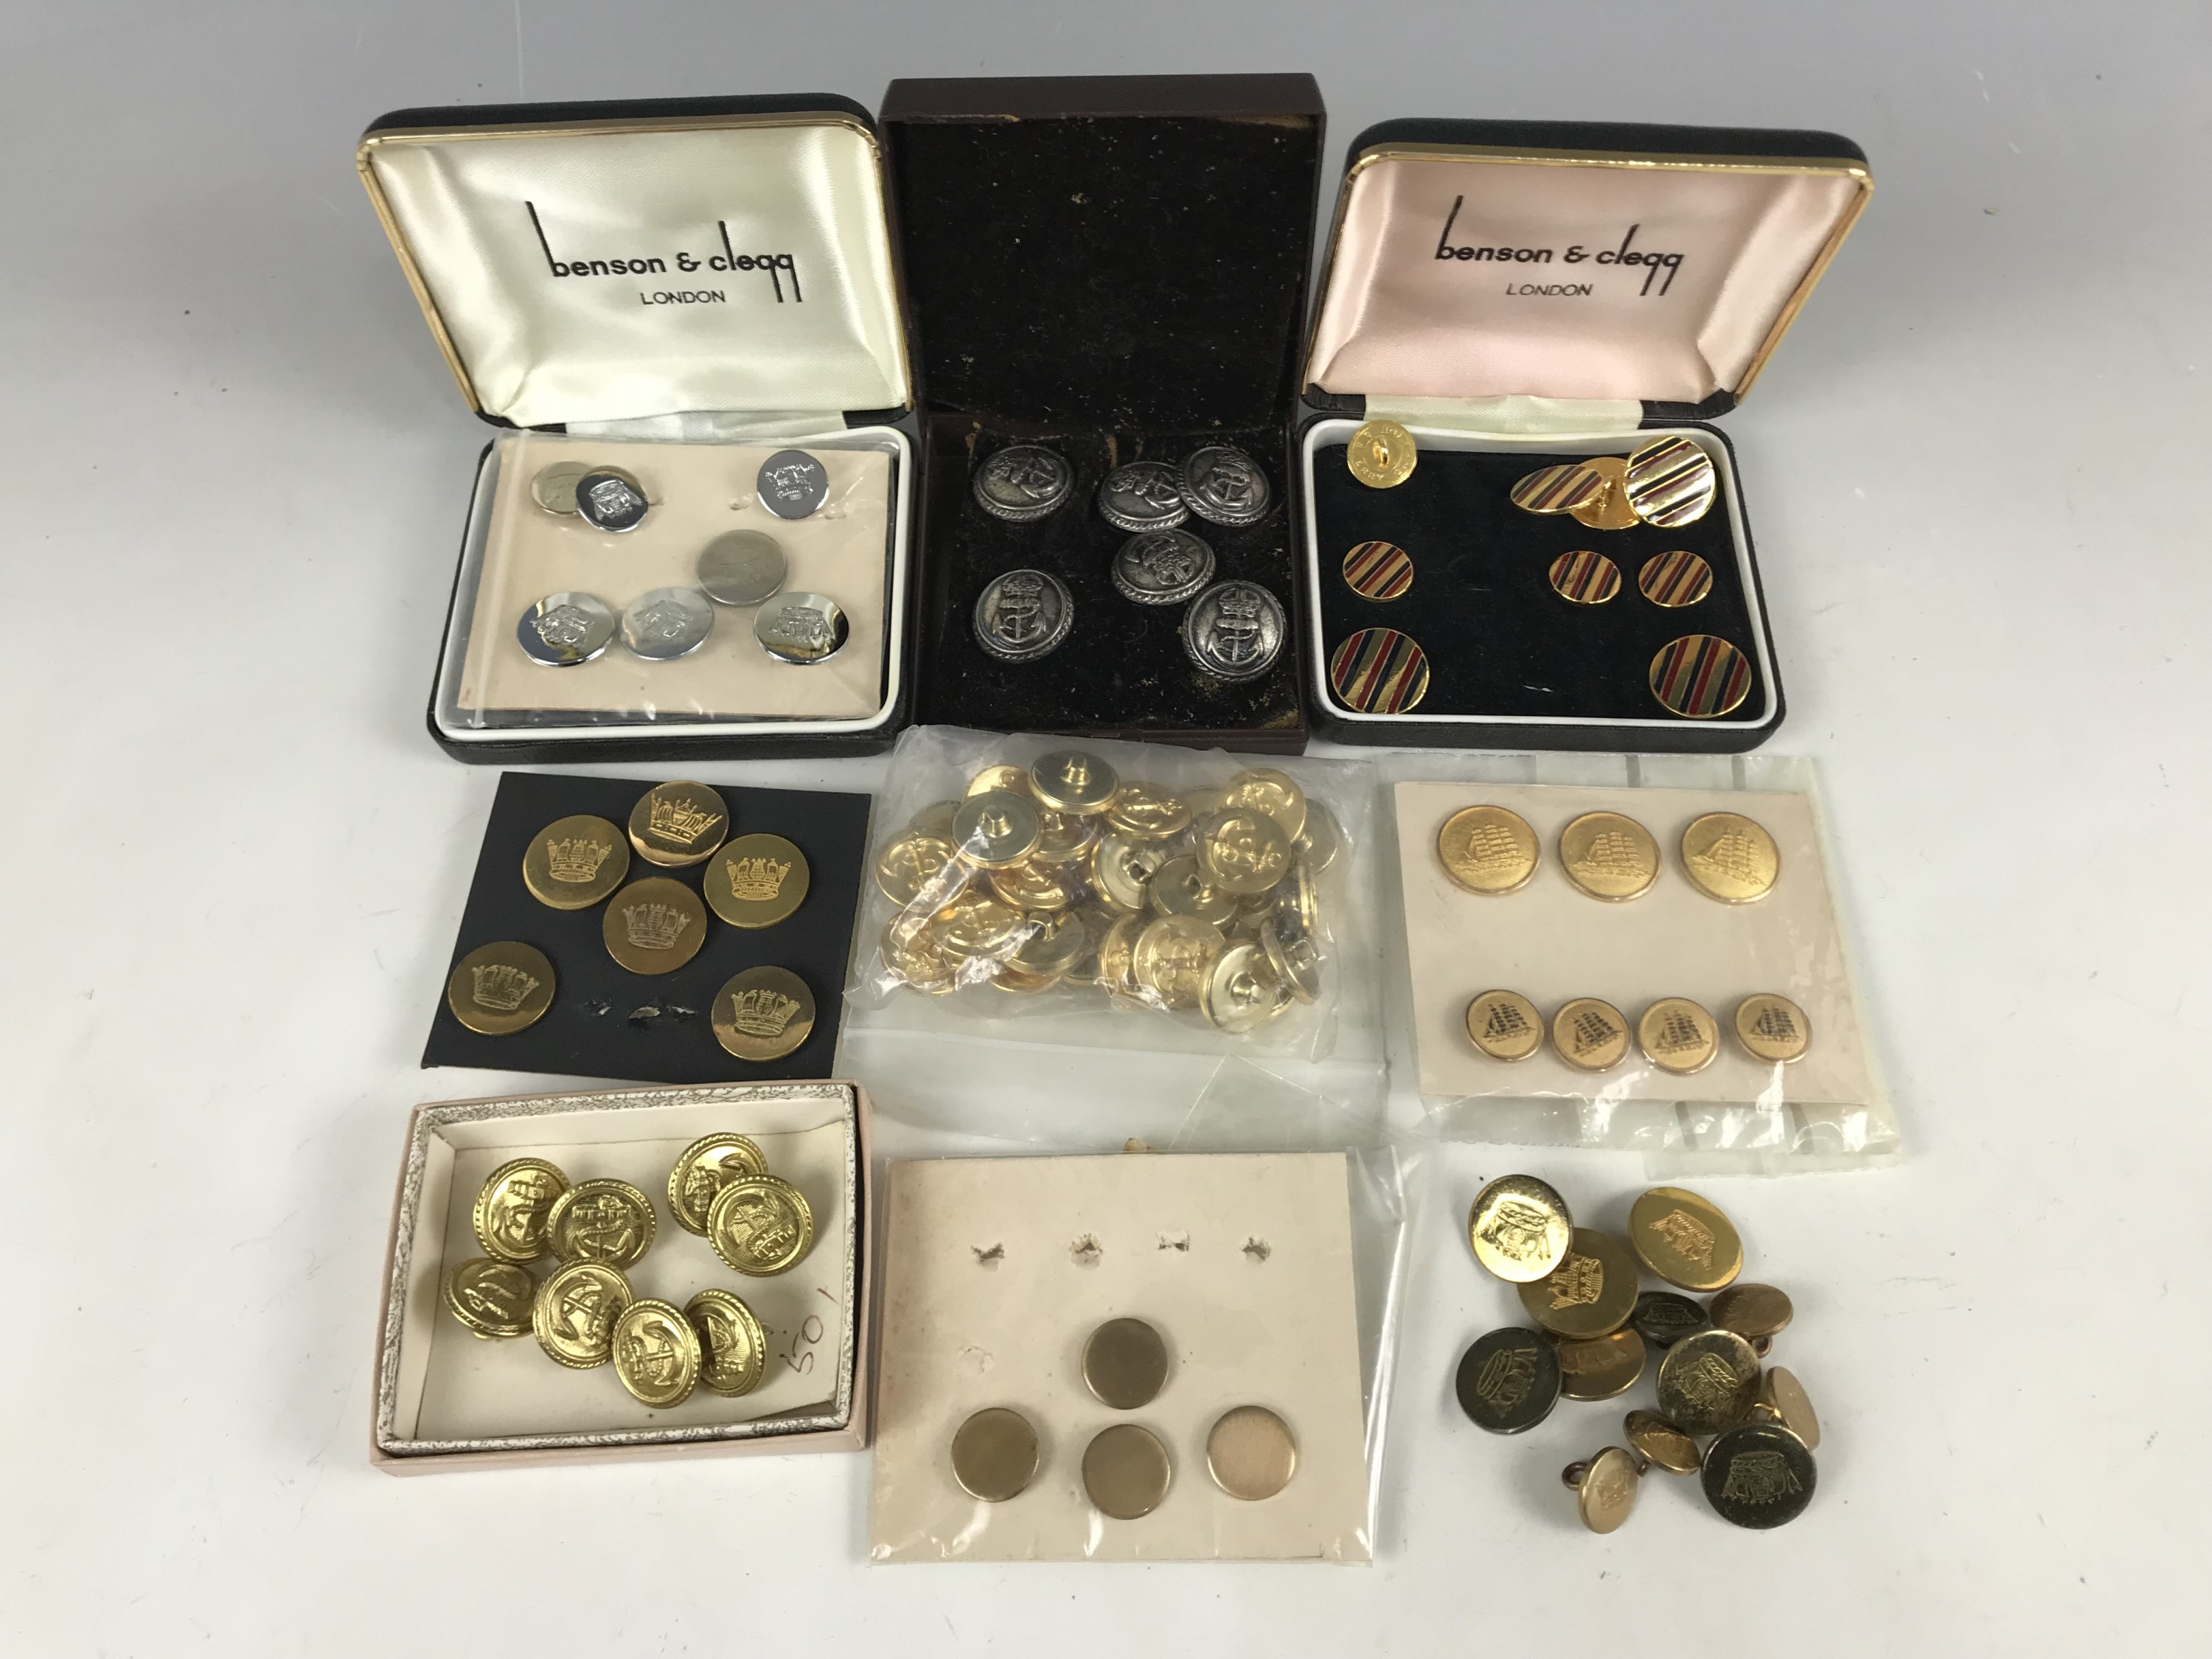 Lot 36 - A quantity of cased sets and other Royal Navy / blazer buttons